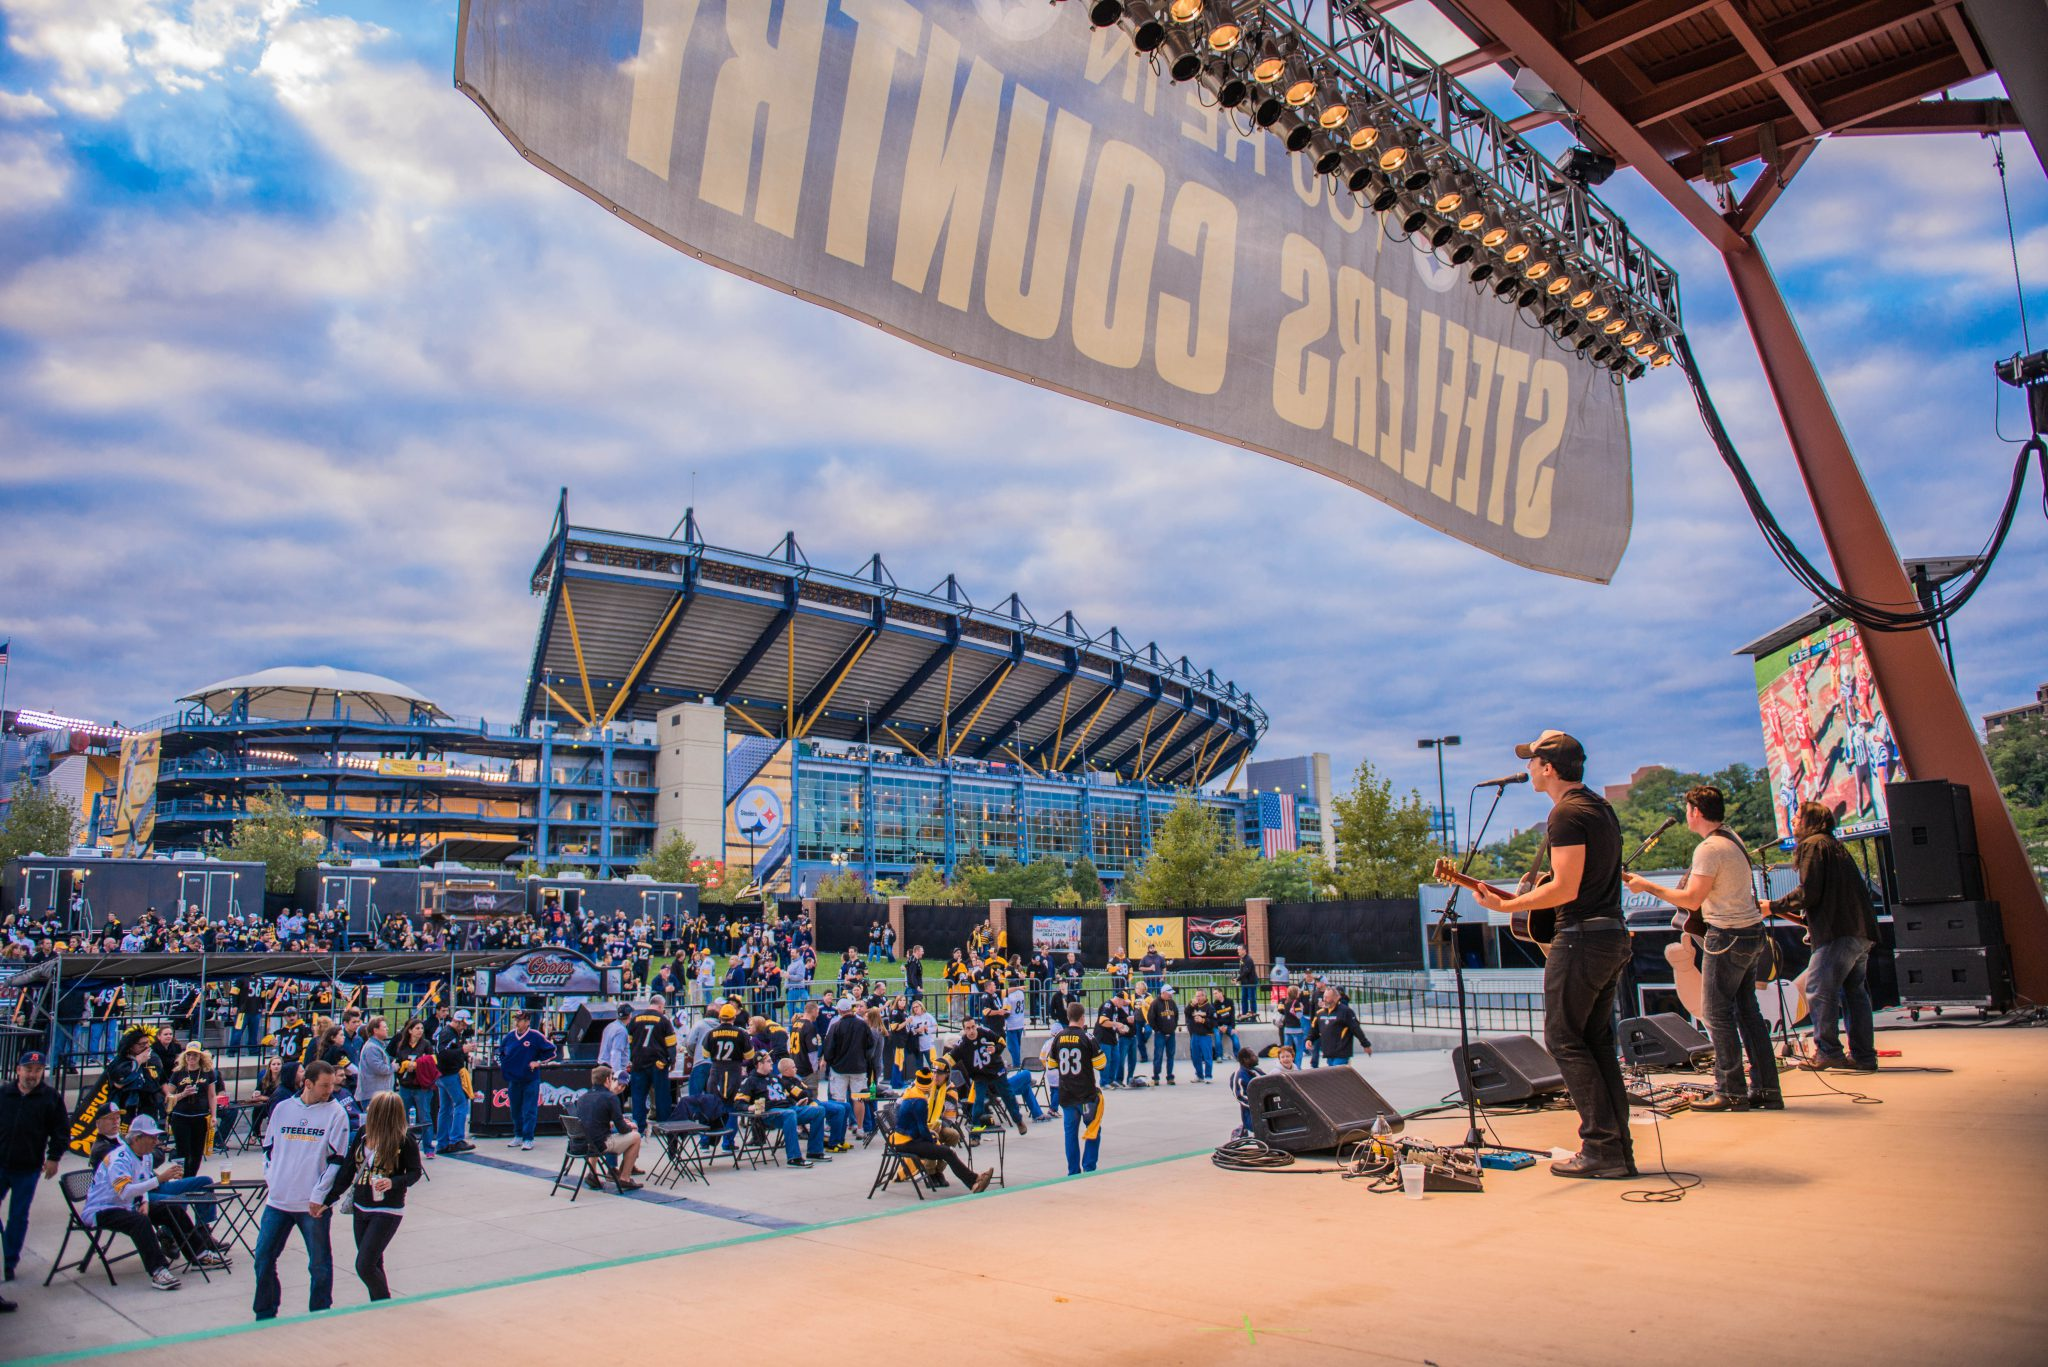 fans tailgate party at a Pittsburgh Steelers game in Heinz Field